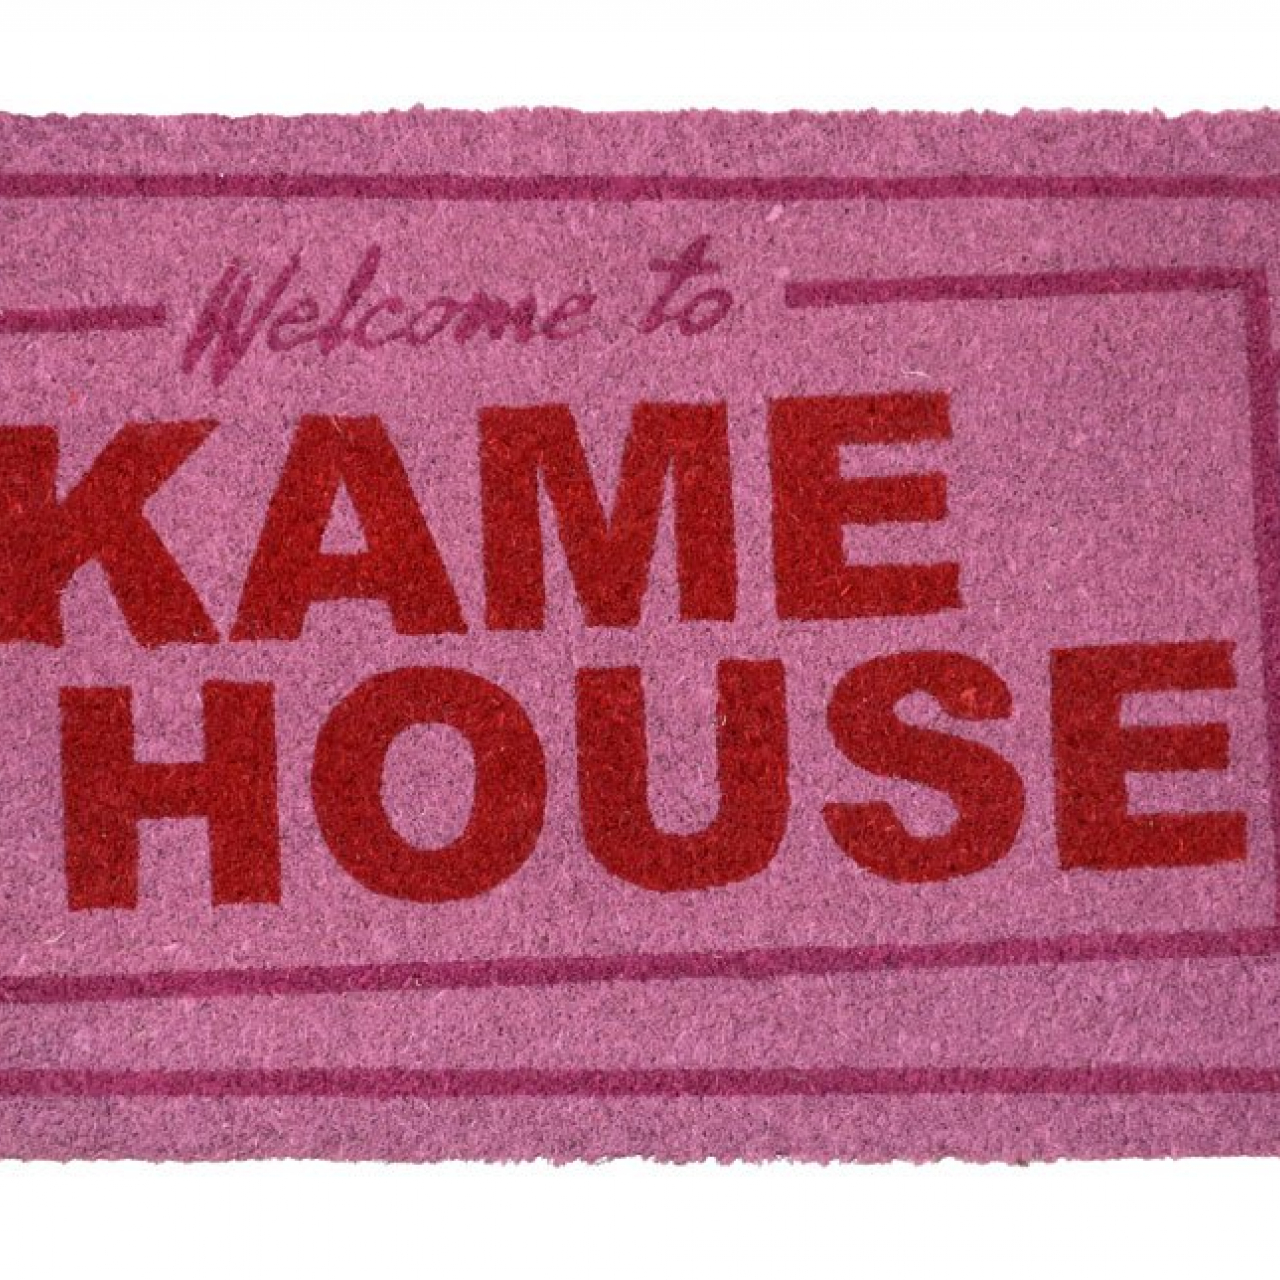 Dragonball Doormat Kame House 40 x 60 cm